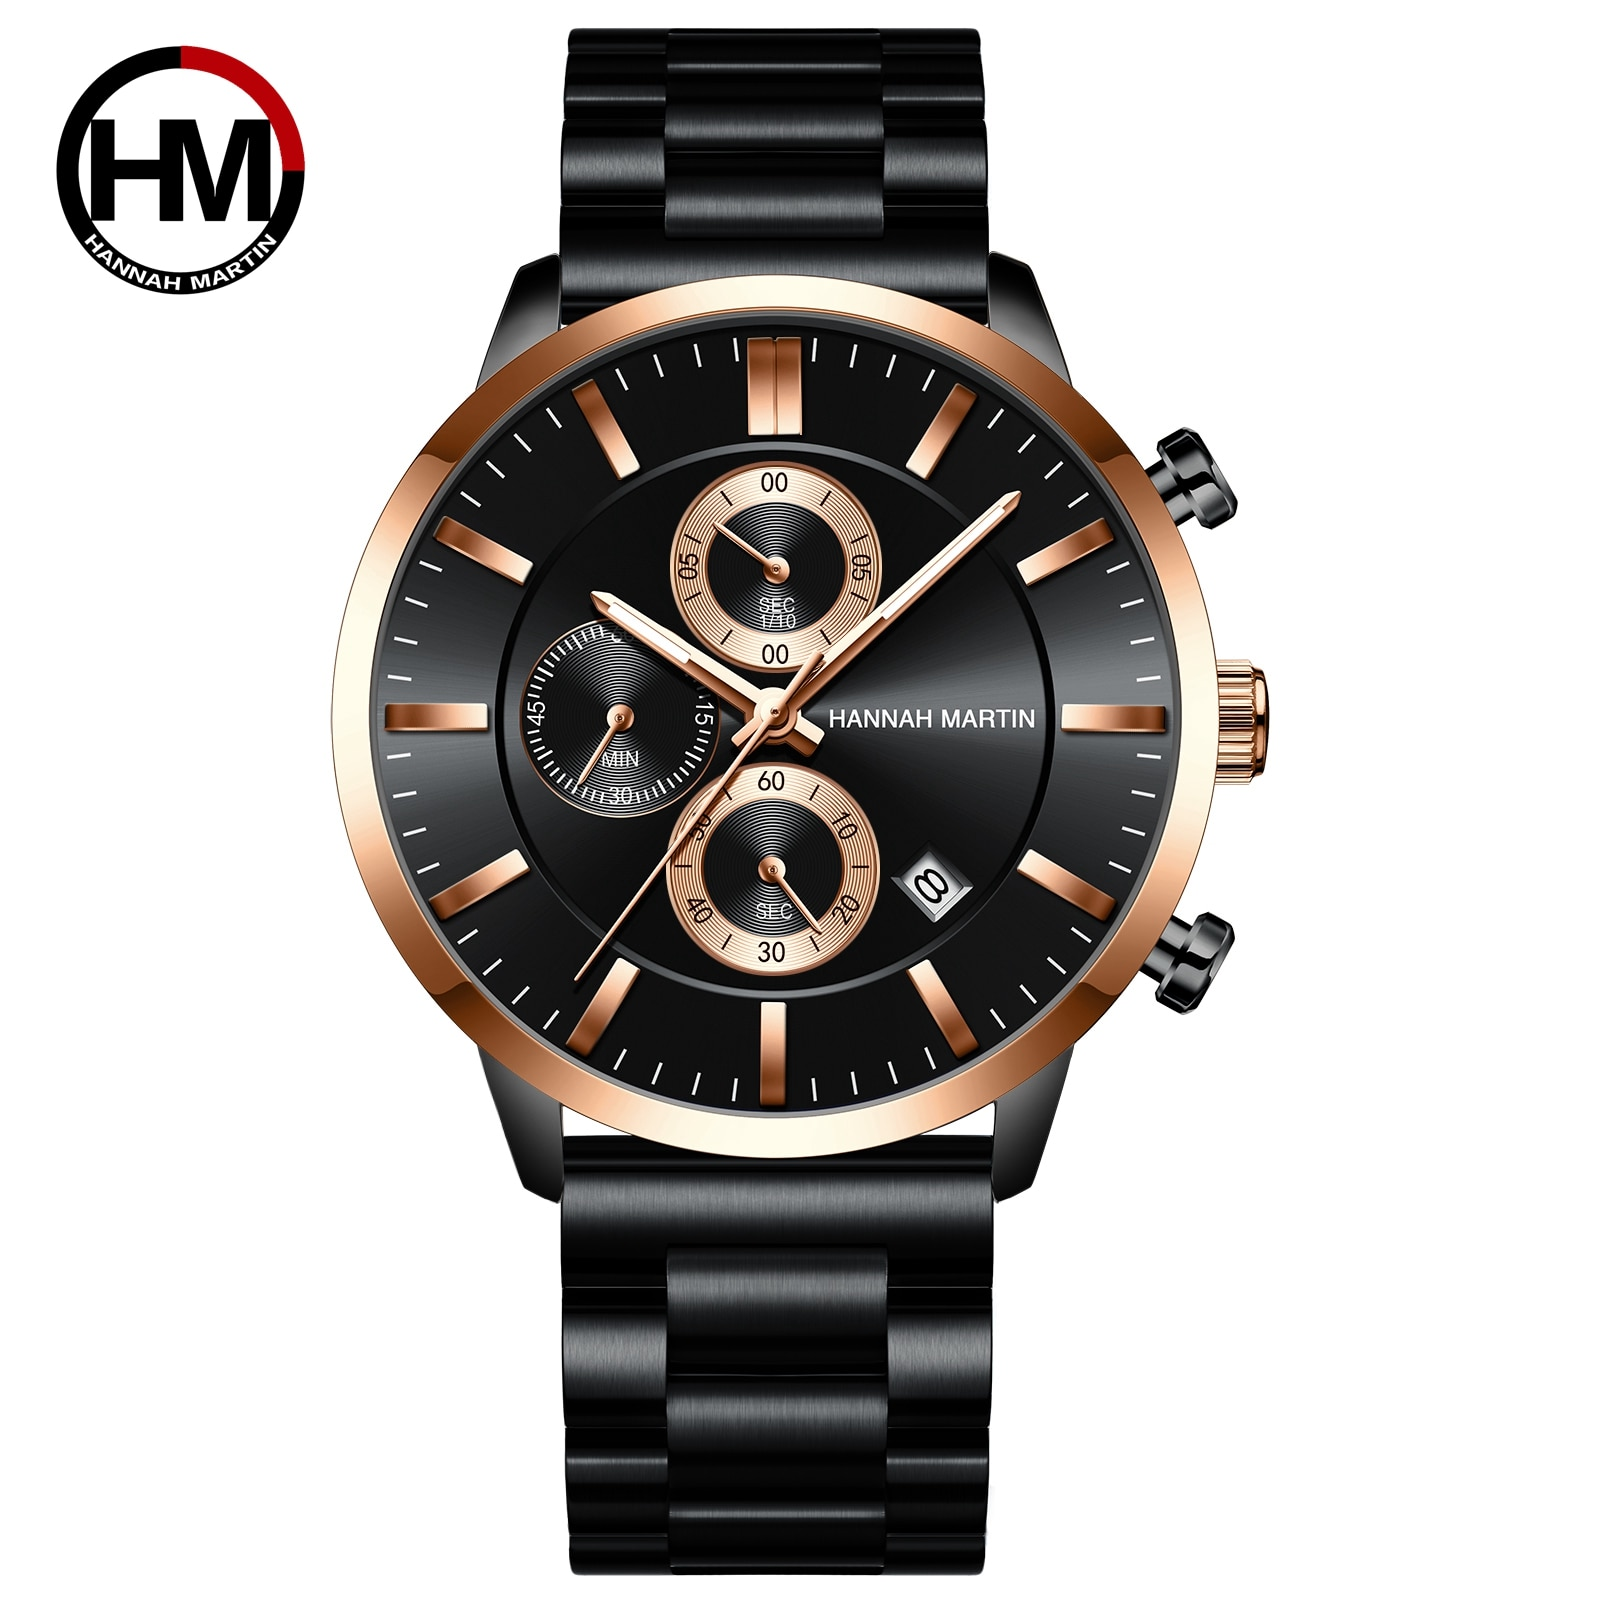 Hannah Martin Business Men\'s Watch Multi-Function Calendar Japan Quartz Movement Waterproof Watch Fashion Metal Band Wristwatch